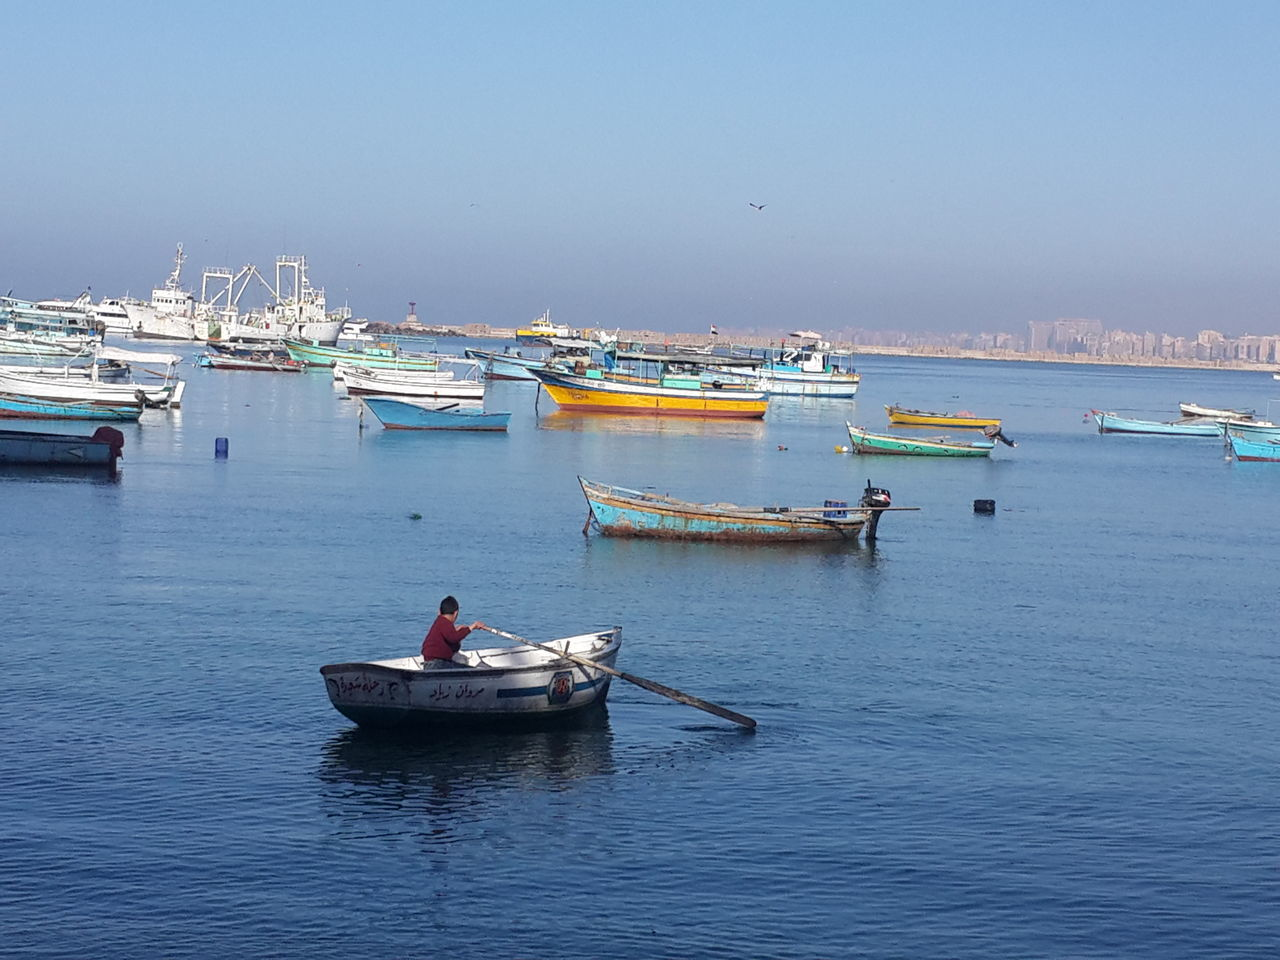 Alexandria Egypt Sea Boat Child Sea Life Boats⛵️ Boats And Water Morning Life Work Sky Blue Sky City Day Outdoors Blue